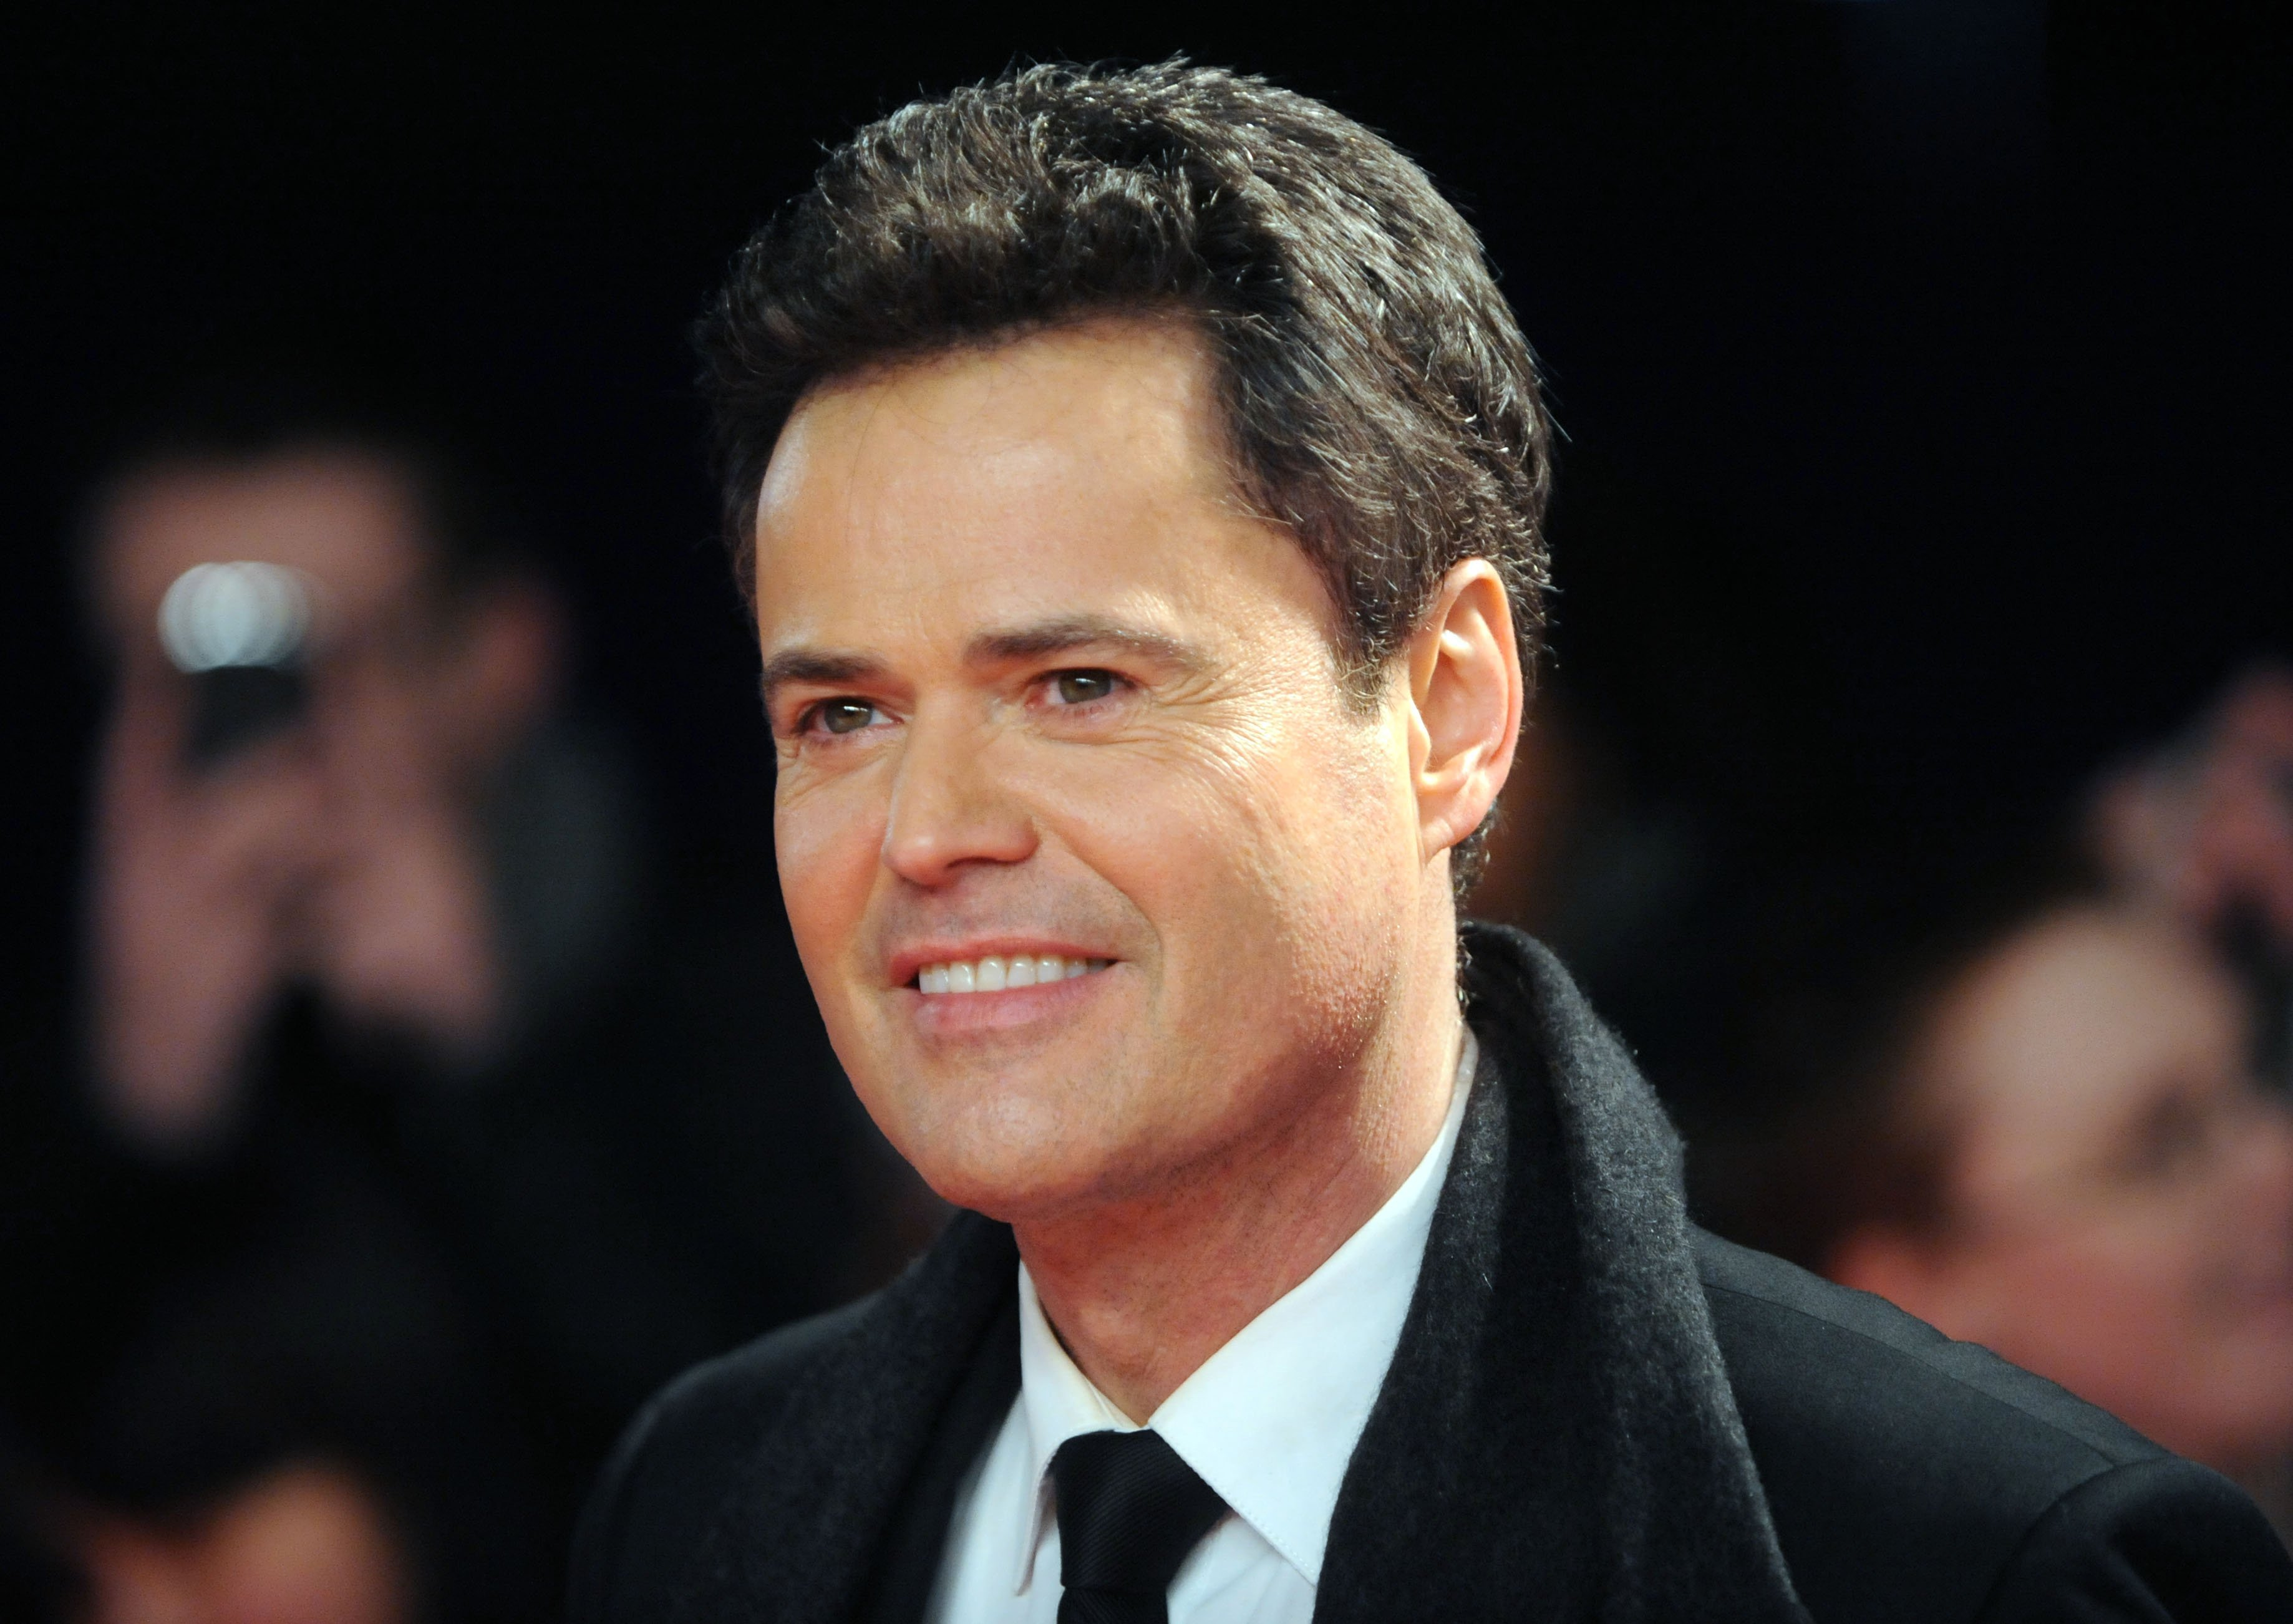 Image Credits: Getty Images / Stuart Wilson | Donny Osmond attends the National Television Awards at 02 Arena on January 23, 2013 in London, England.